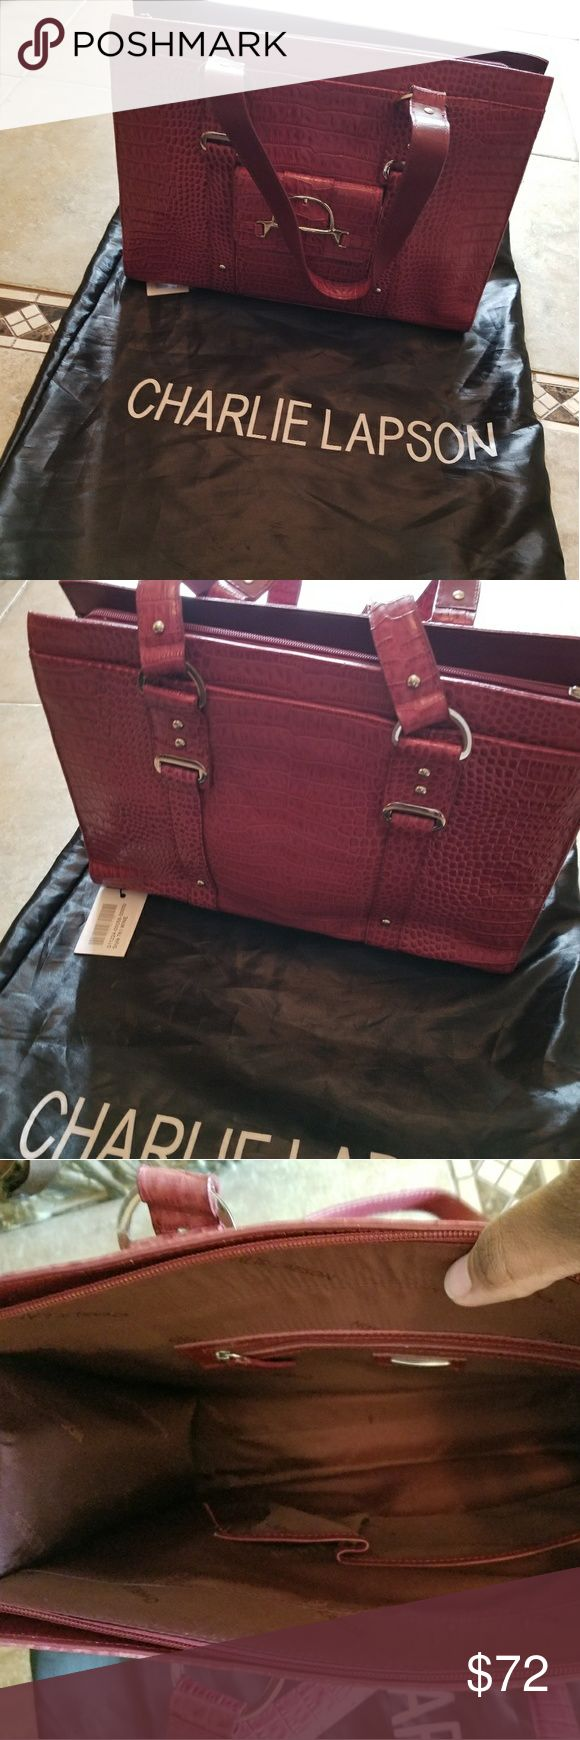 Charlie Lapson Tote Large Wine crocodile embossed leather features double strap with 2 large outside pockets along with 1 small front outside pocket. Purse features a zipper compartment on inside. No stains, pen or pencil marks on inside, but small area where the color has peeled.  Straps not worn. Gently worn once. Purse a little dented from storage only. Comes with original storage bag. Charlie Lapson is known for making exclusive leather handbags for the stars! An original purchase from…